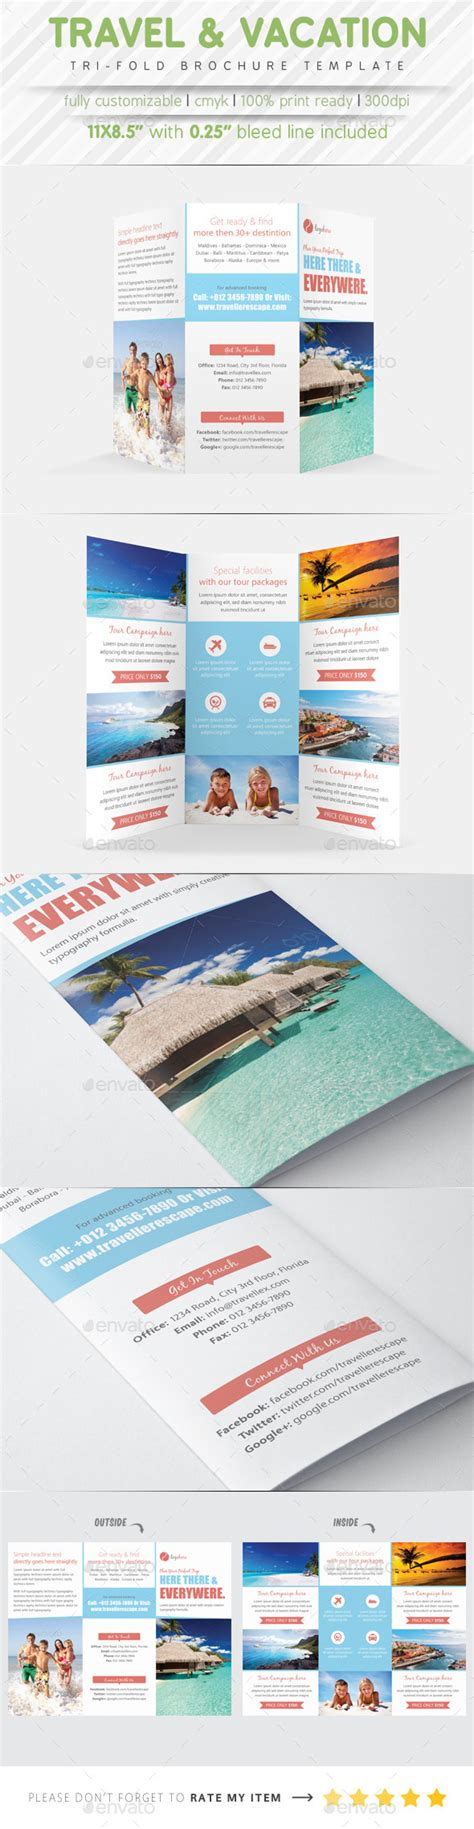 travel agency brochure template travel agency tri fold brochure by samiul75 graphicriver